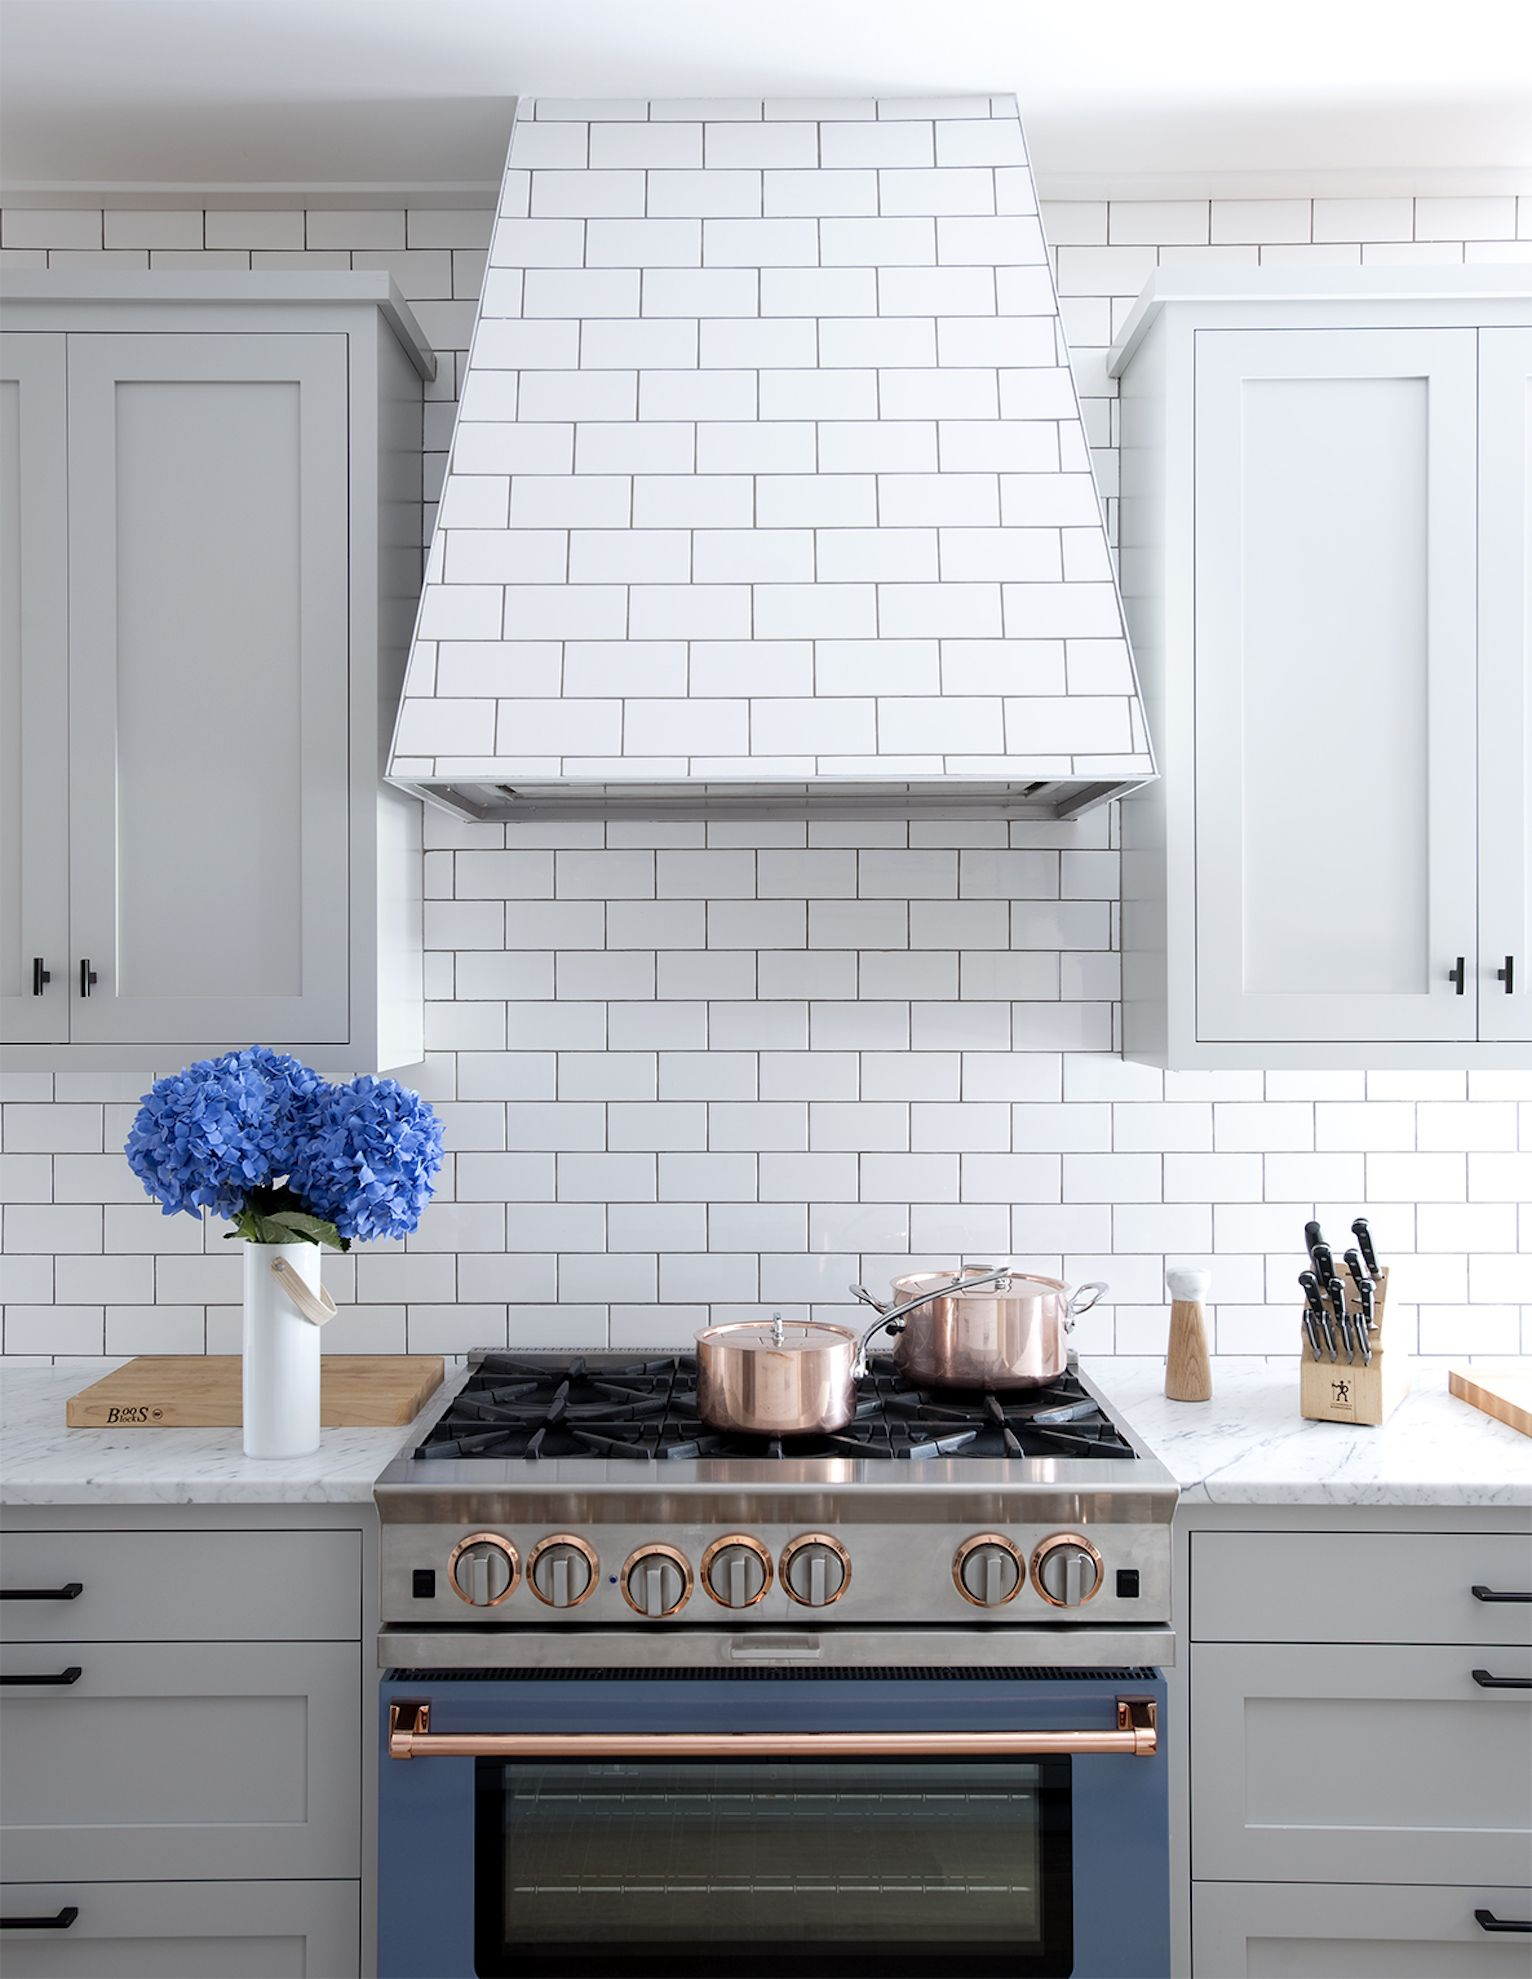 Charmant White Subway Tile All Over And Brass Accents In This Kitchen Design |  Threshold Interiors NYC